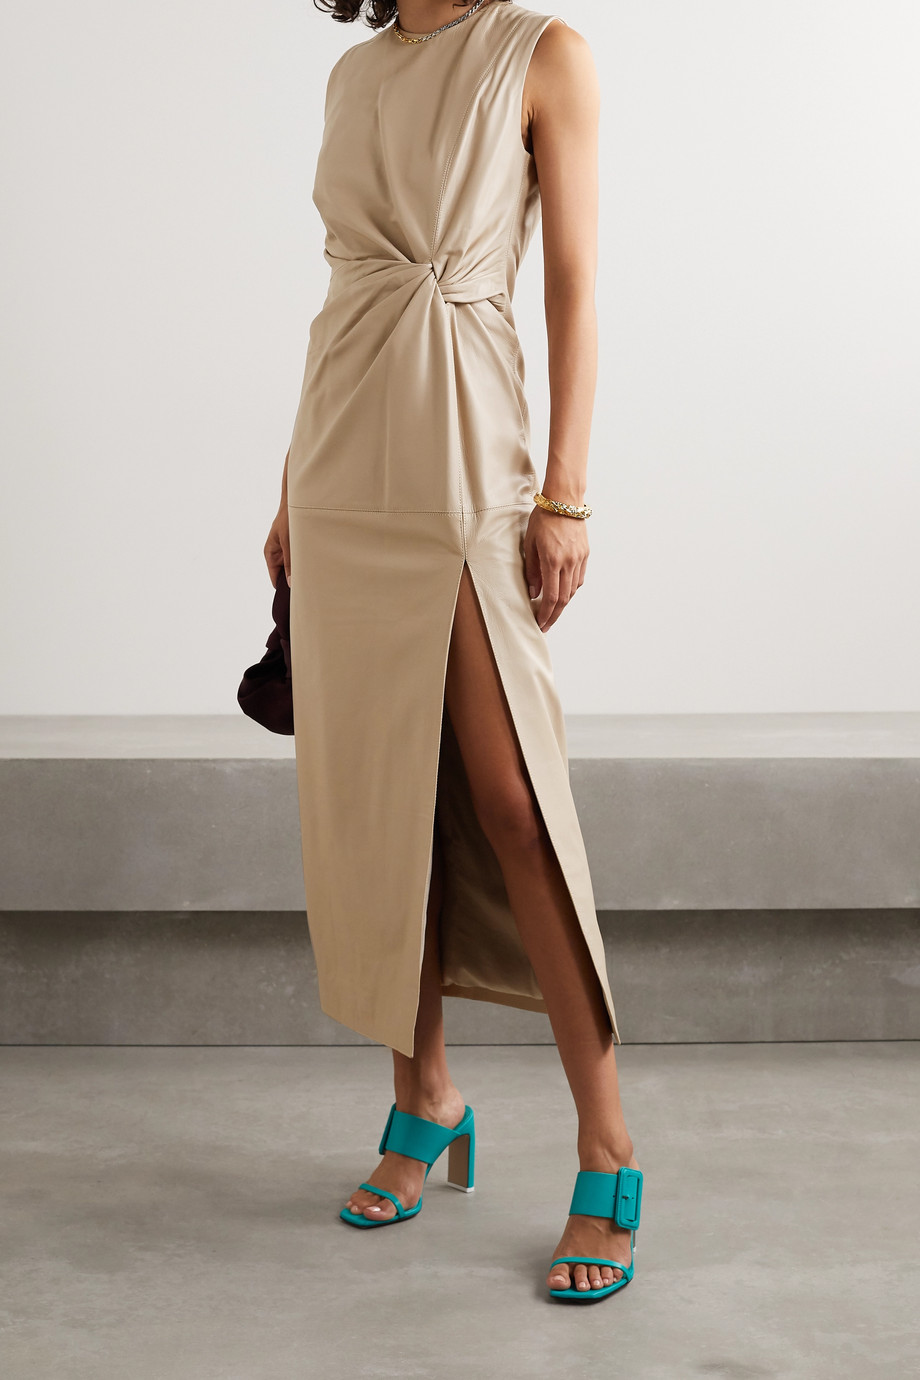 16ARLINGTON Akiko knotted leather midi dress